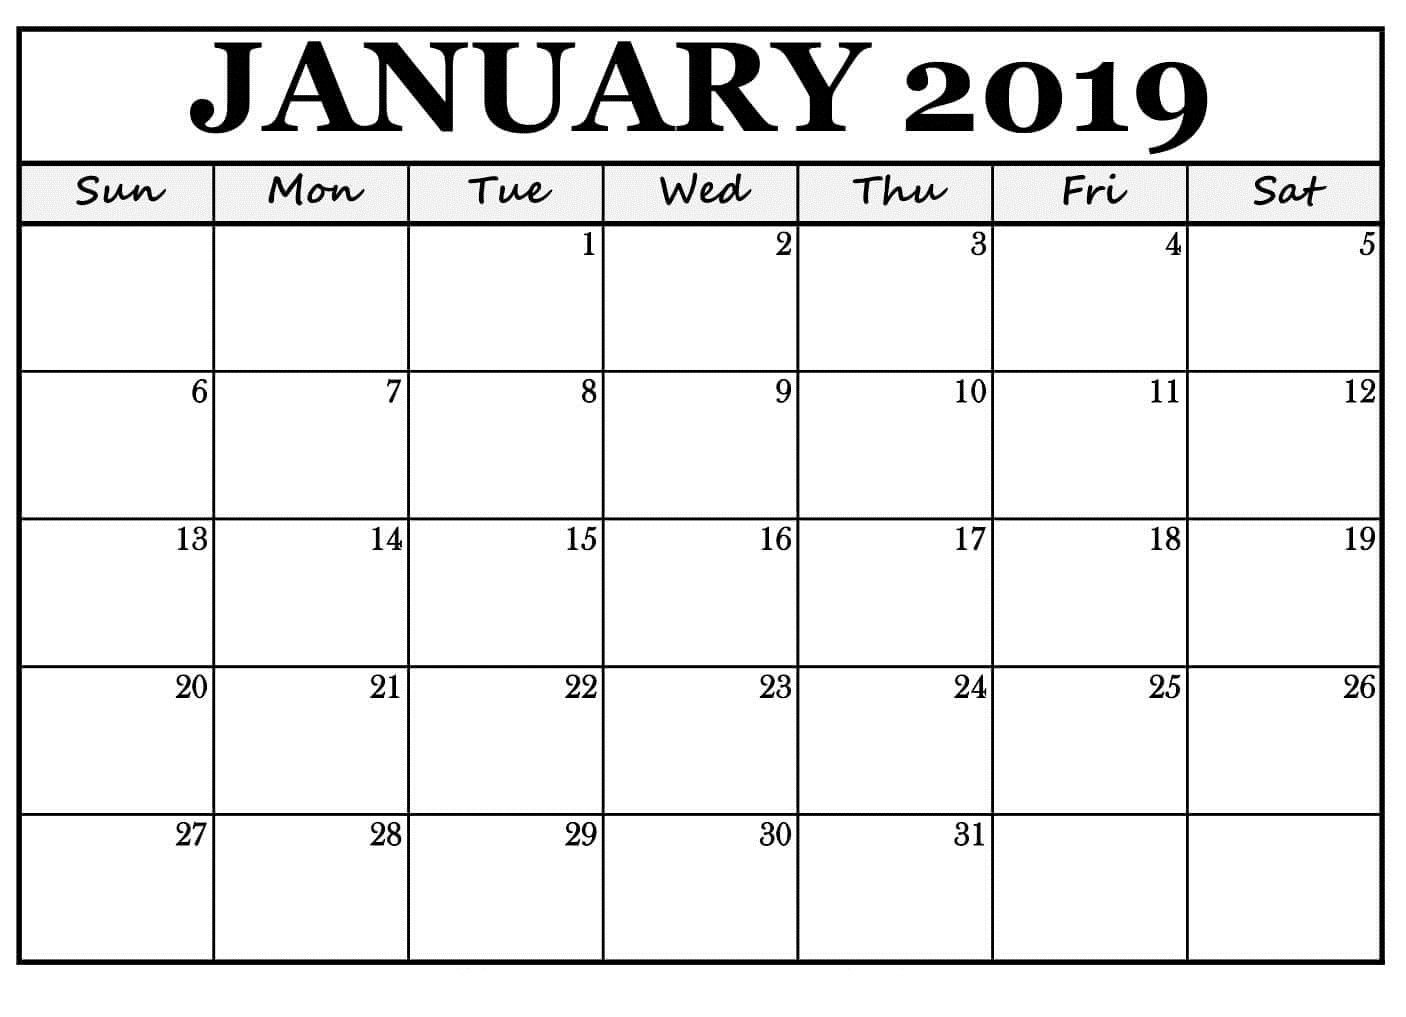 January 2019 Calendar Reminders Free Template | January 2019 Calendar 2019 January Printable